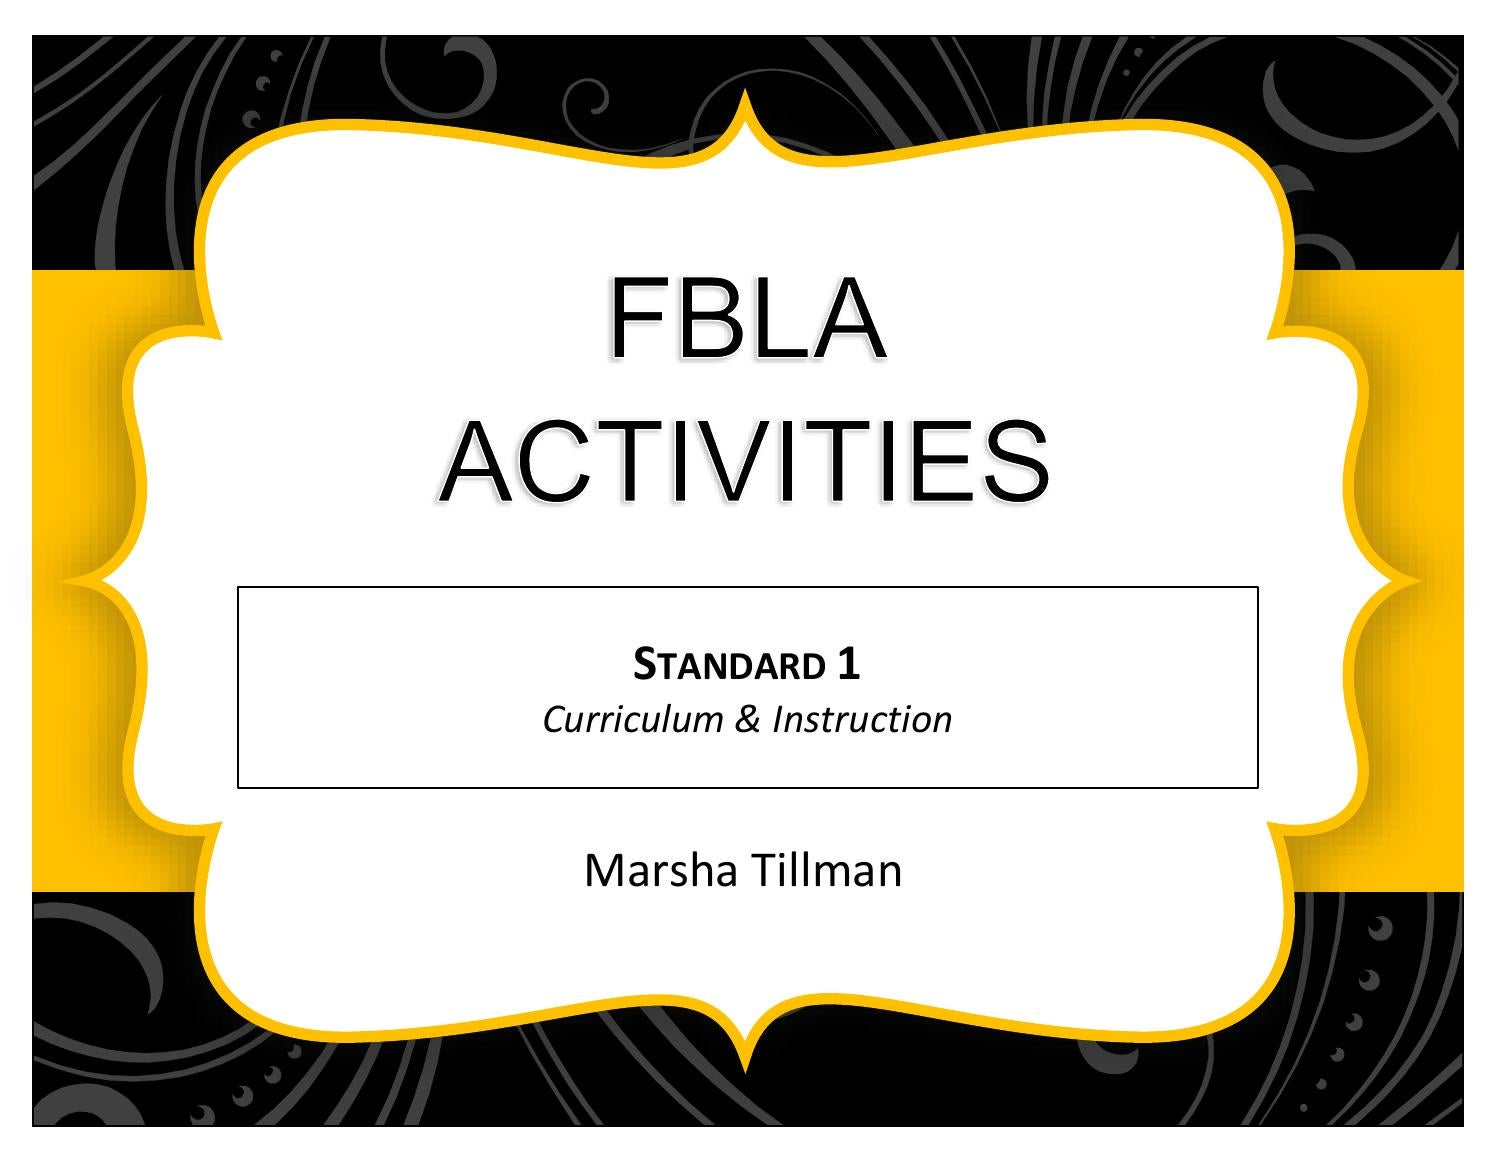 fbla logo coloring pages - photo#25